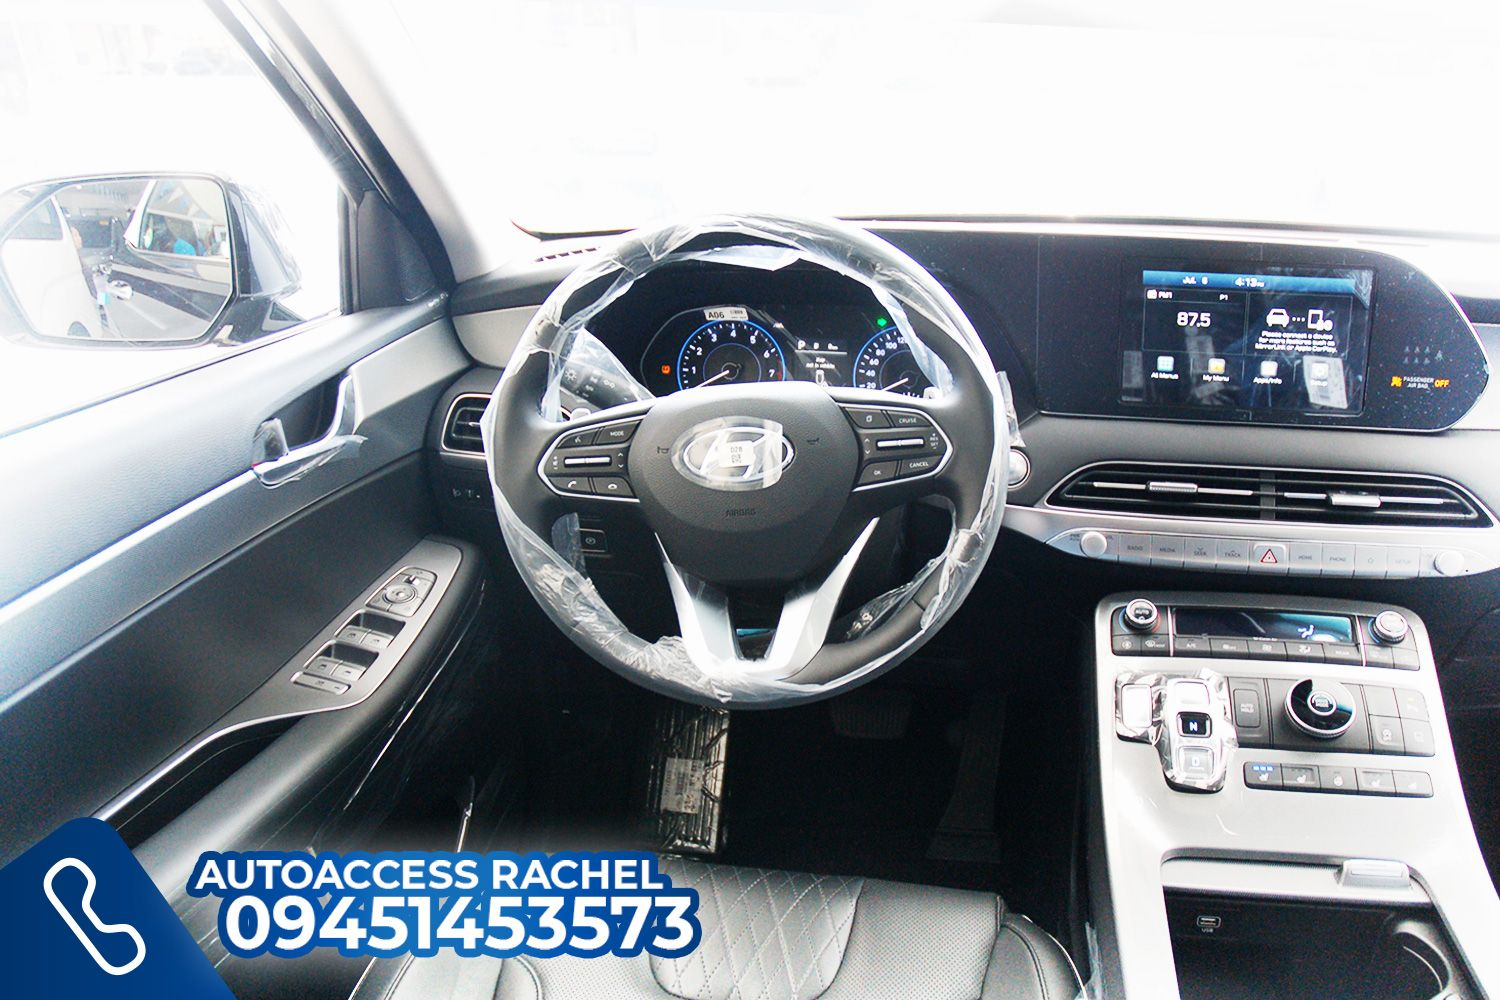 2020 Hyundai Palisade Quezon City Hyundai West Avenue